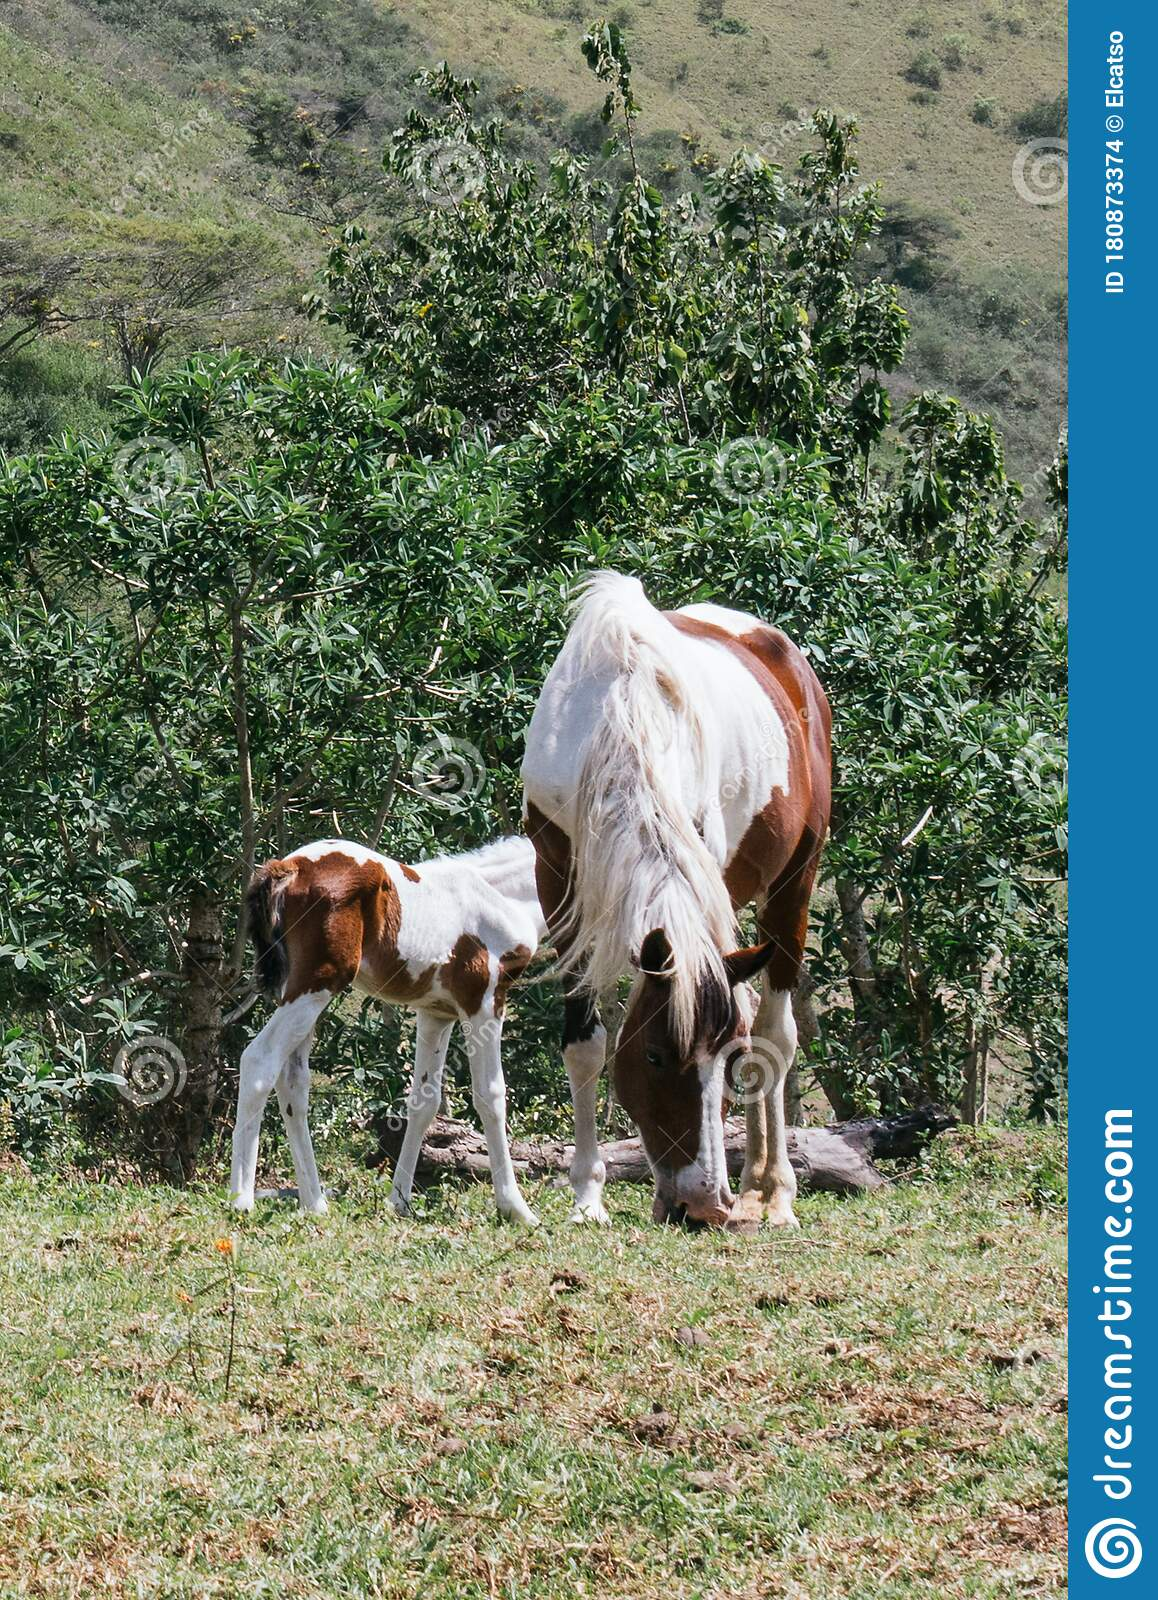 Mare And Foal Mother And Son Pinto Horses Stock Photo Image Of Meadow Funny 180873374